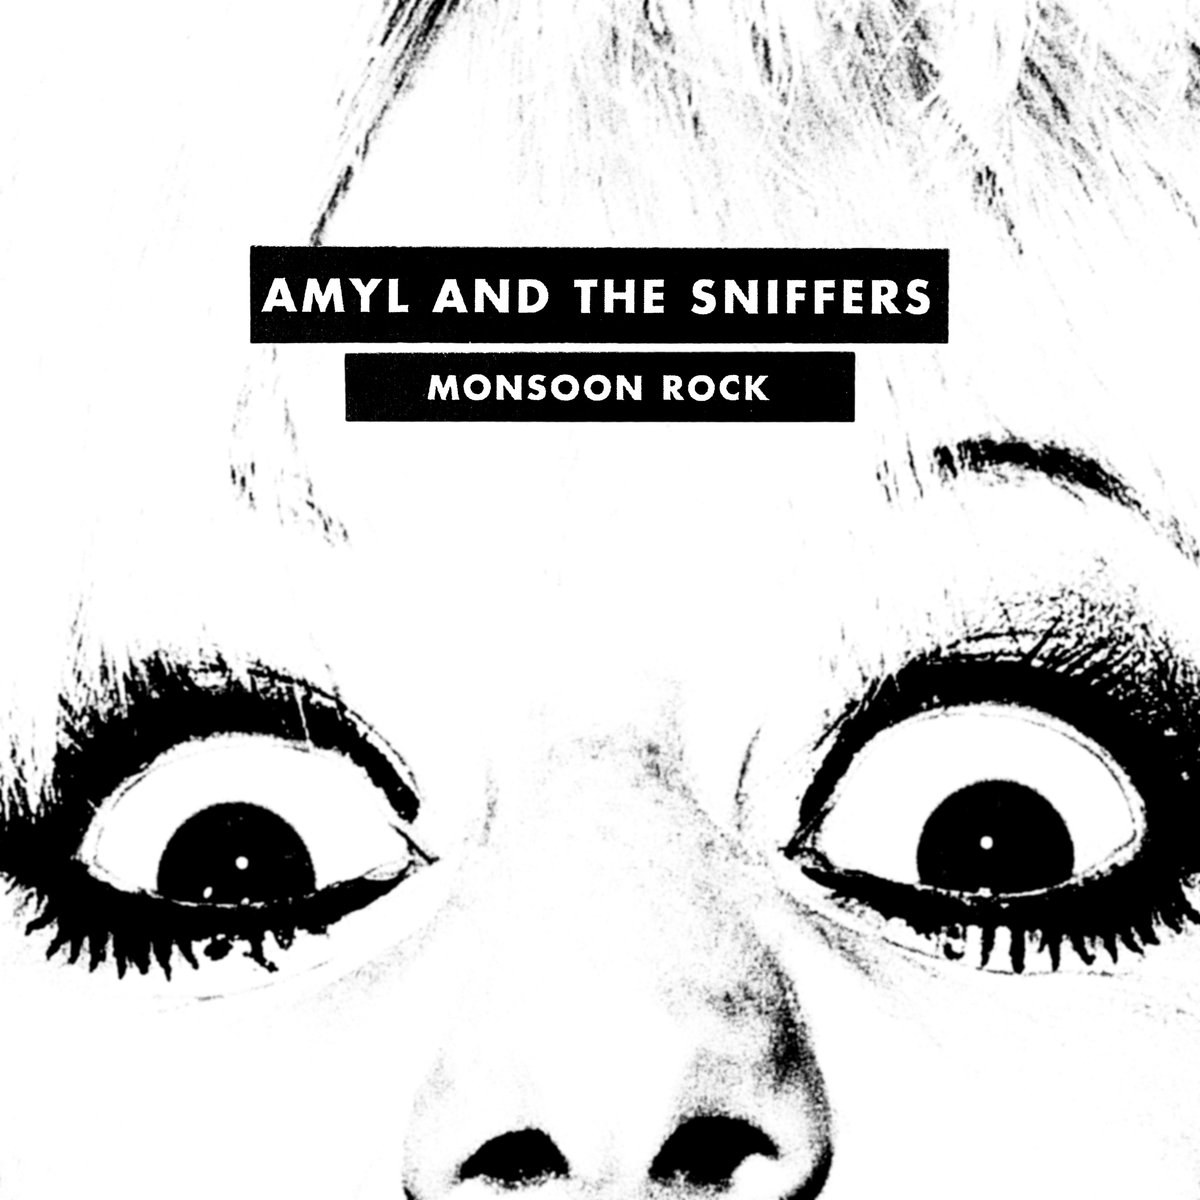 Amyl and the Sniffers' 'Monsoon Rock' is unmuzzled, untethered and untamed